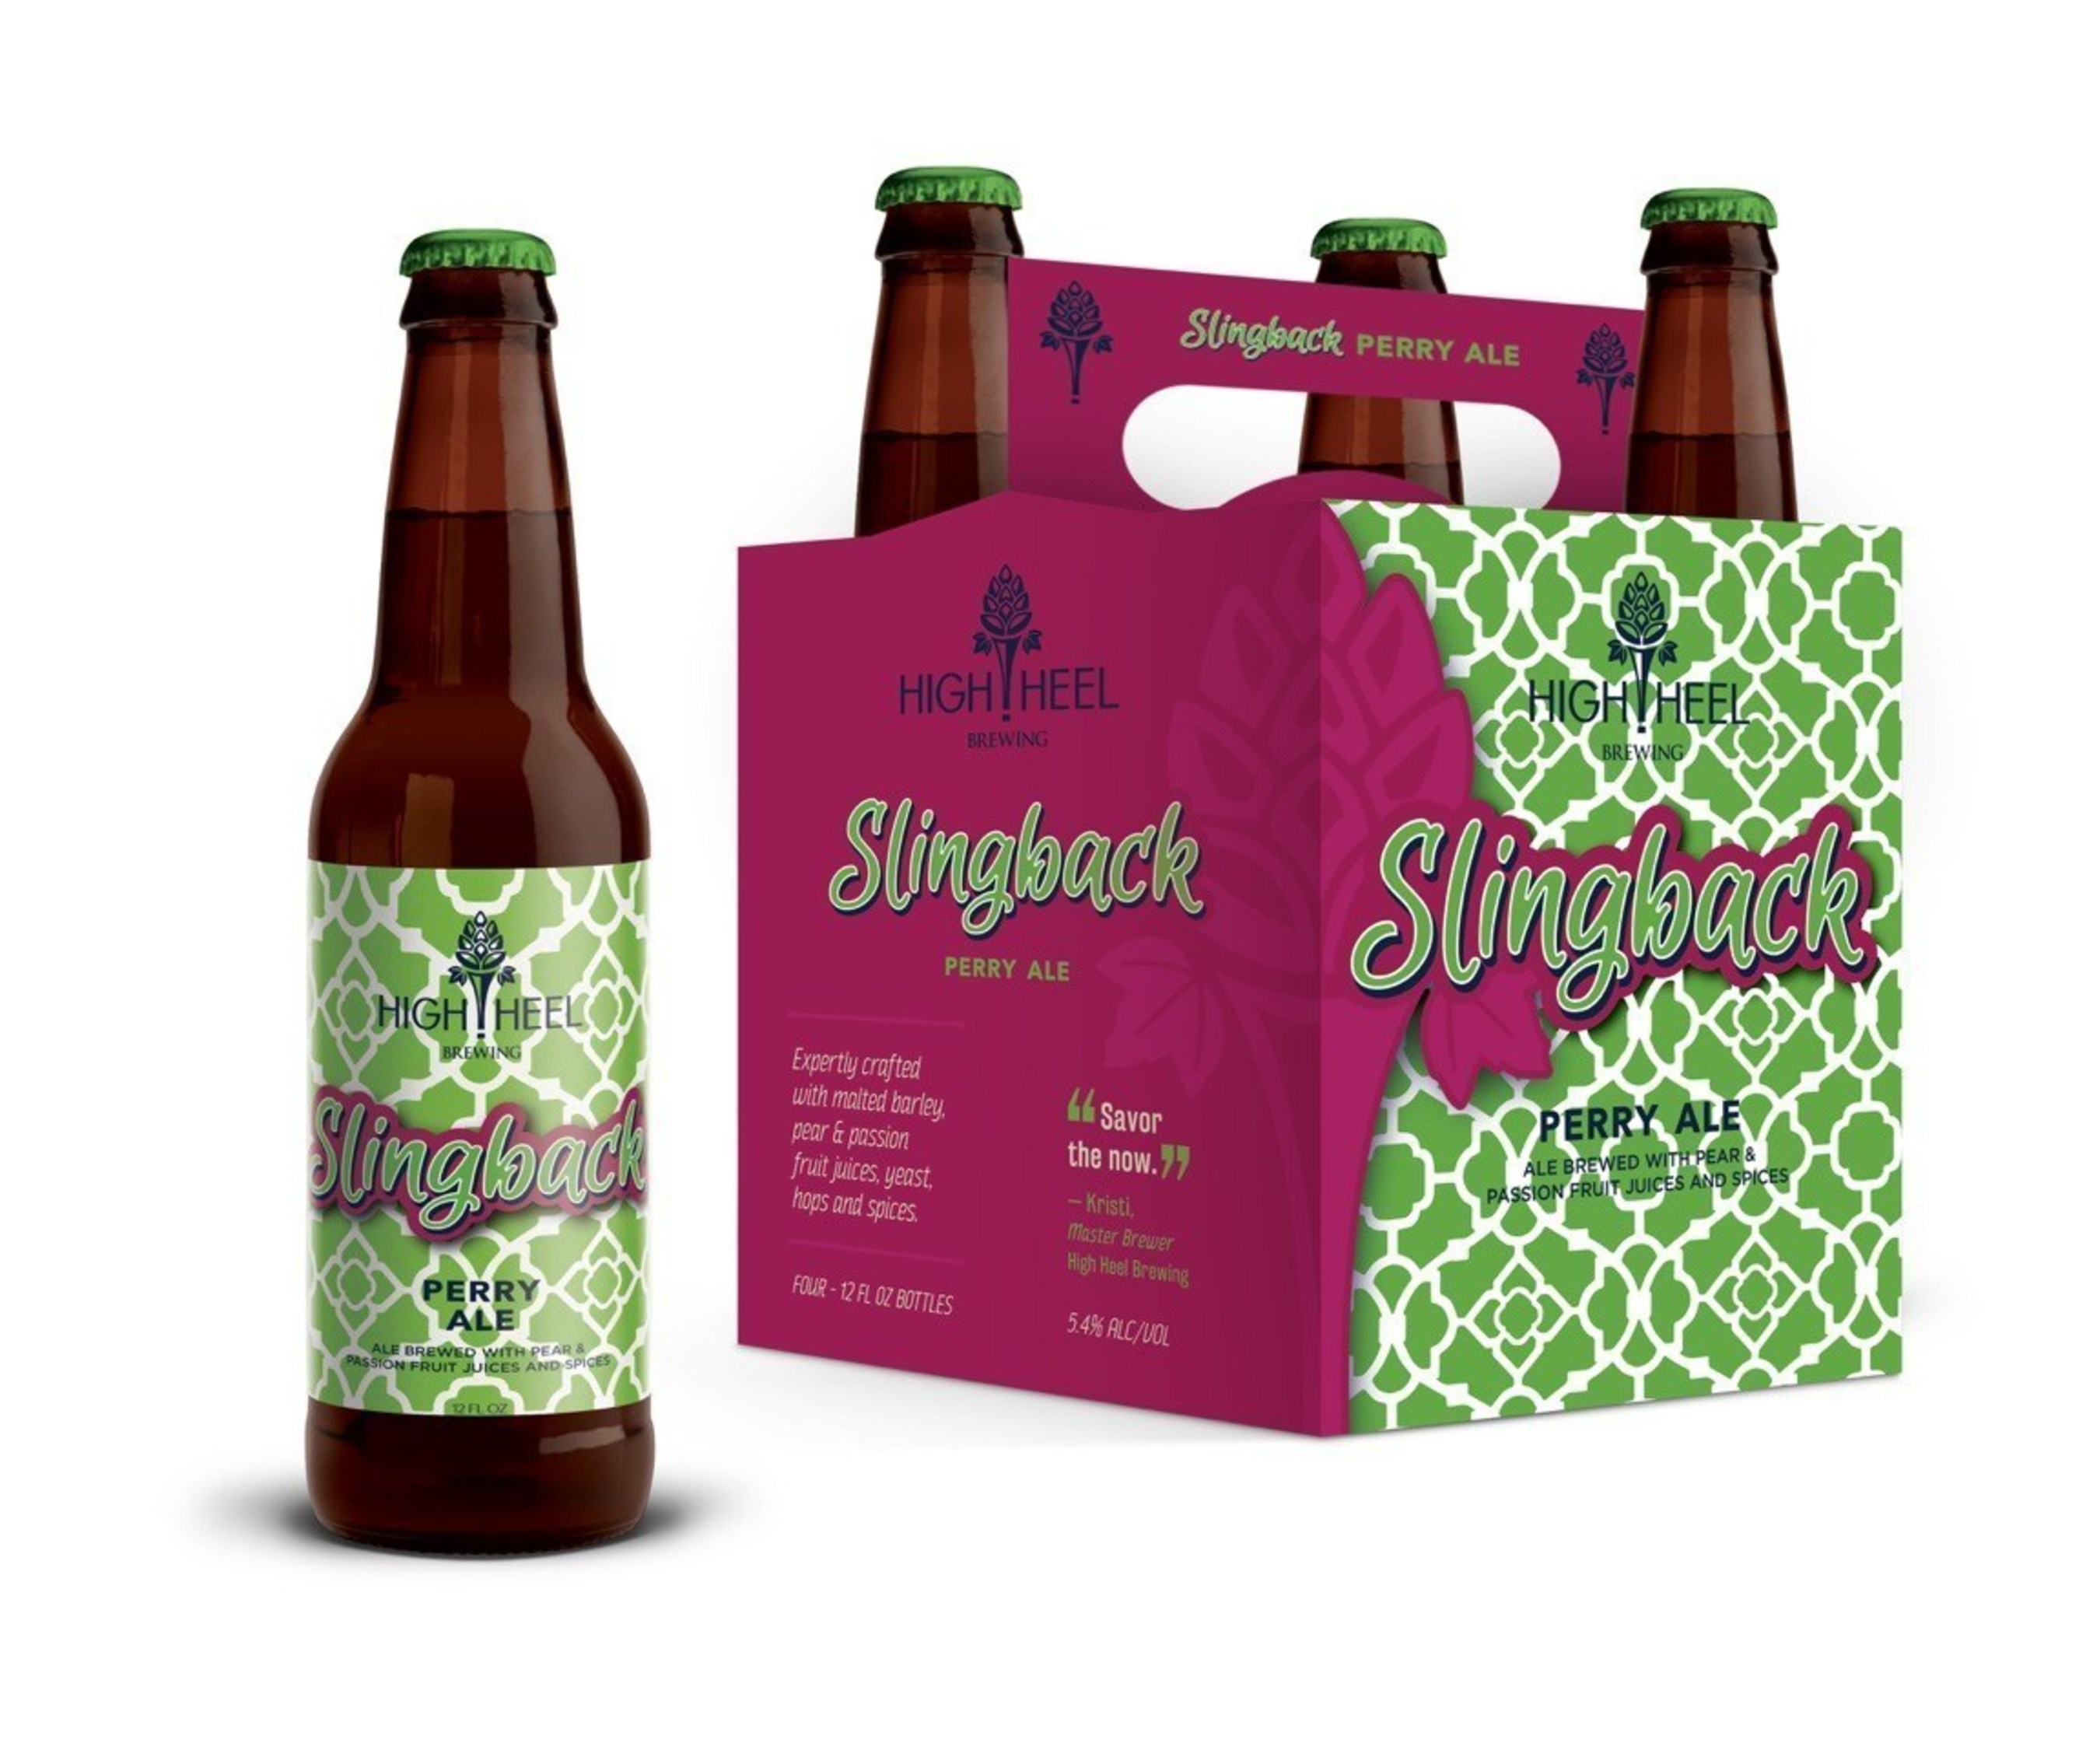 Slingback Perry Ale by High Heel Brewing. Photo Credit: High Heel Brewing.